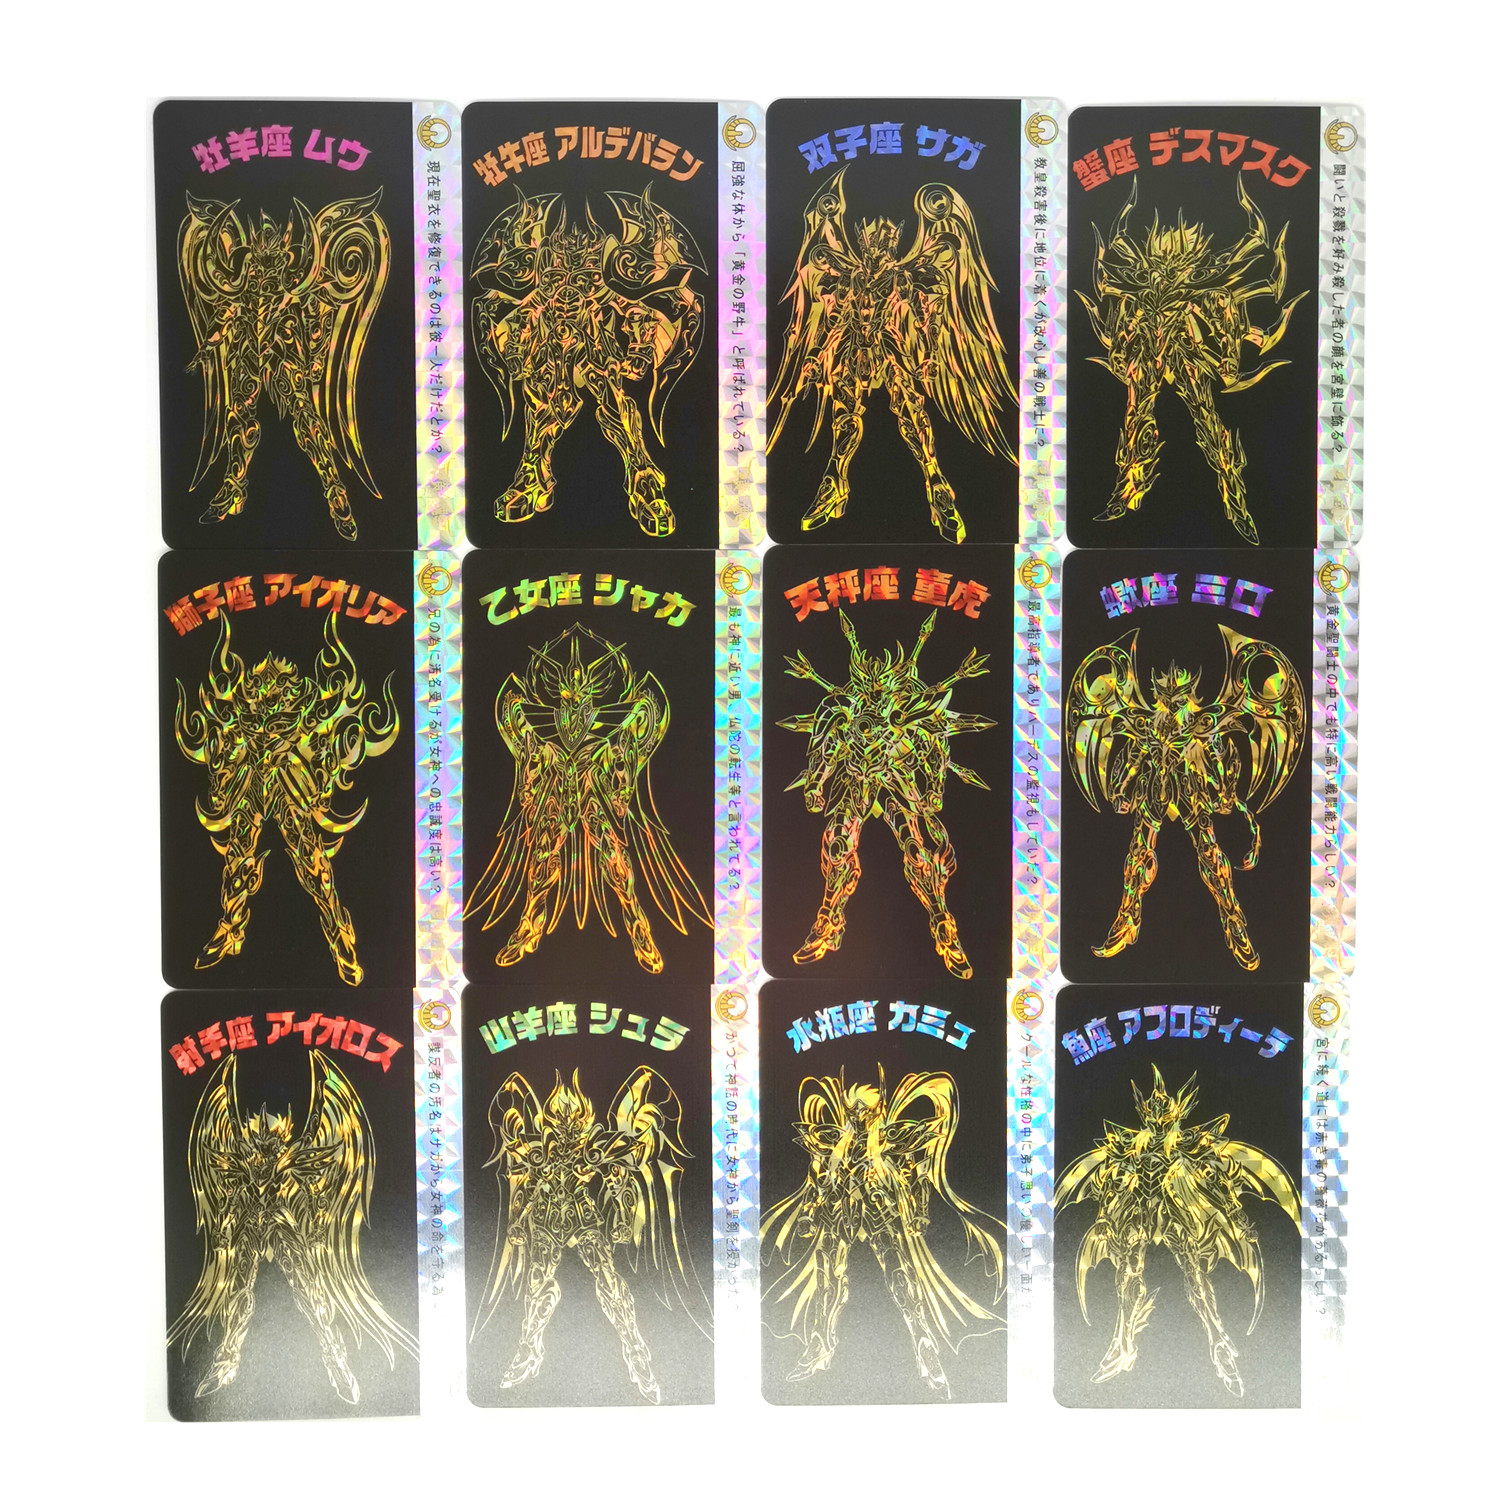 12pcs/set Saint Seiya Solid Gold Soul Toys Hobbies Hobby Collectibles Game Collection Anime Cards